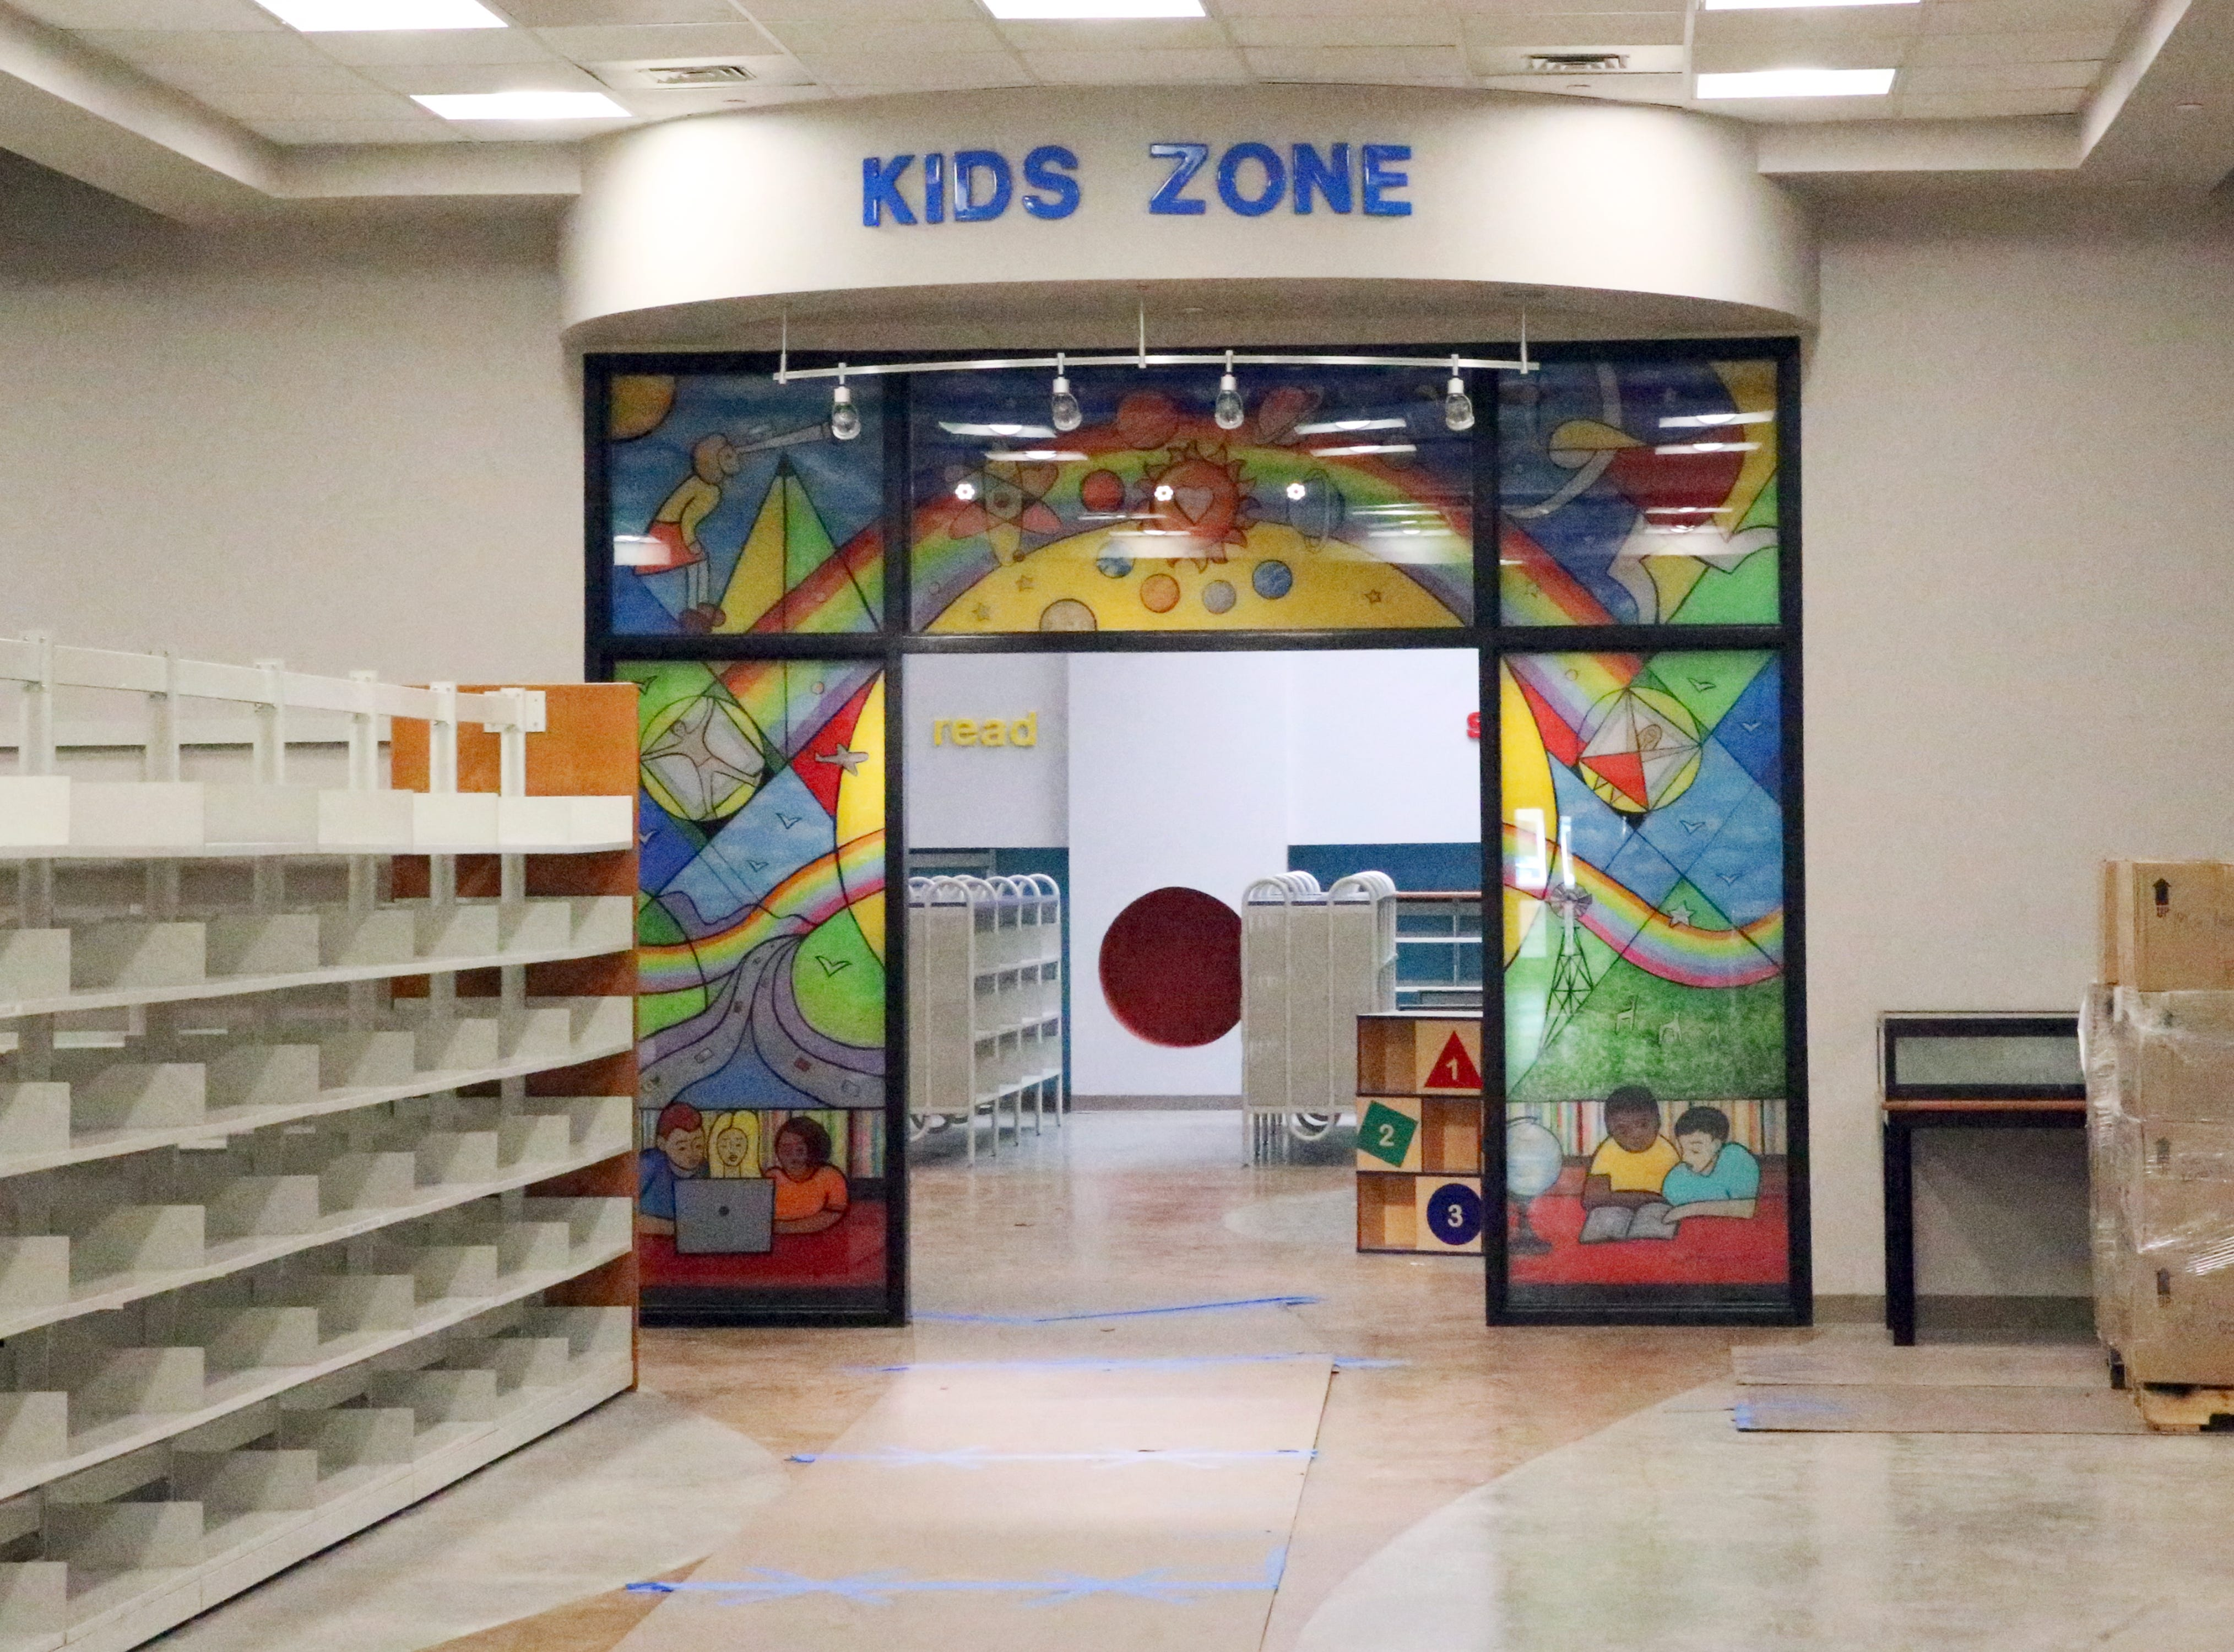 The newly expanded Kids Zone features art glass panels from El Paso artist Hal Marcus at the entrance. Boxes at right contain part of 72,000 books awaiting shelving.